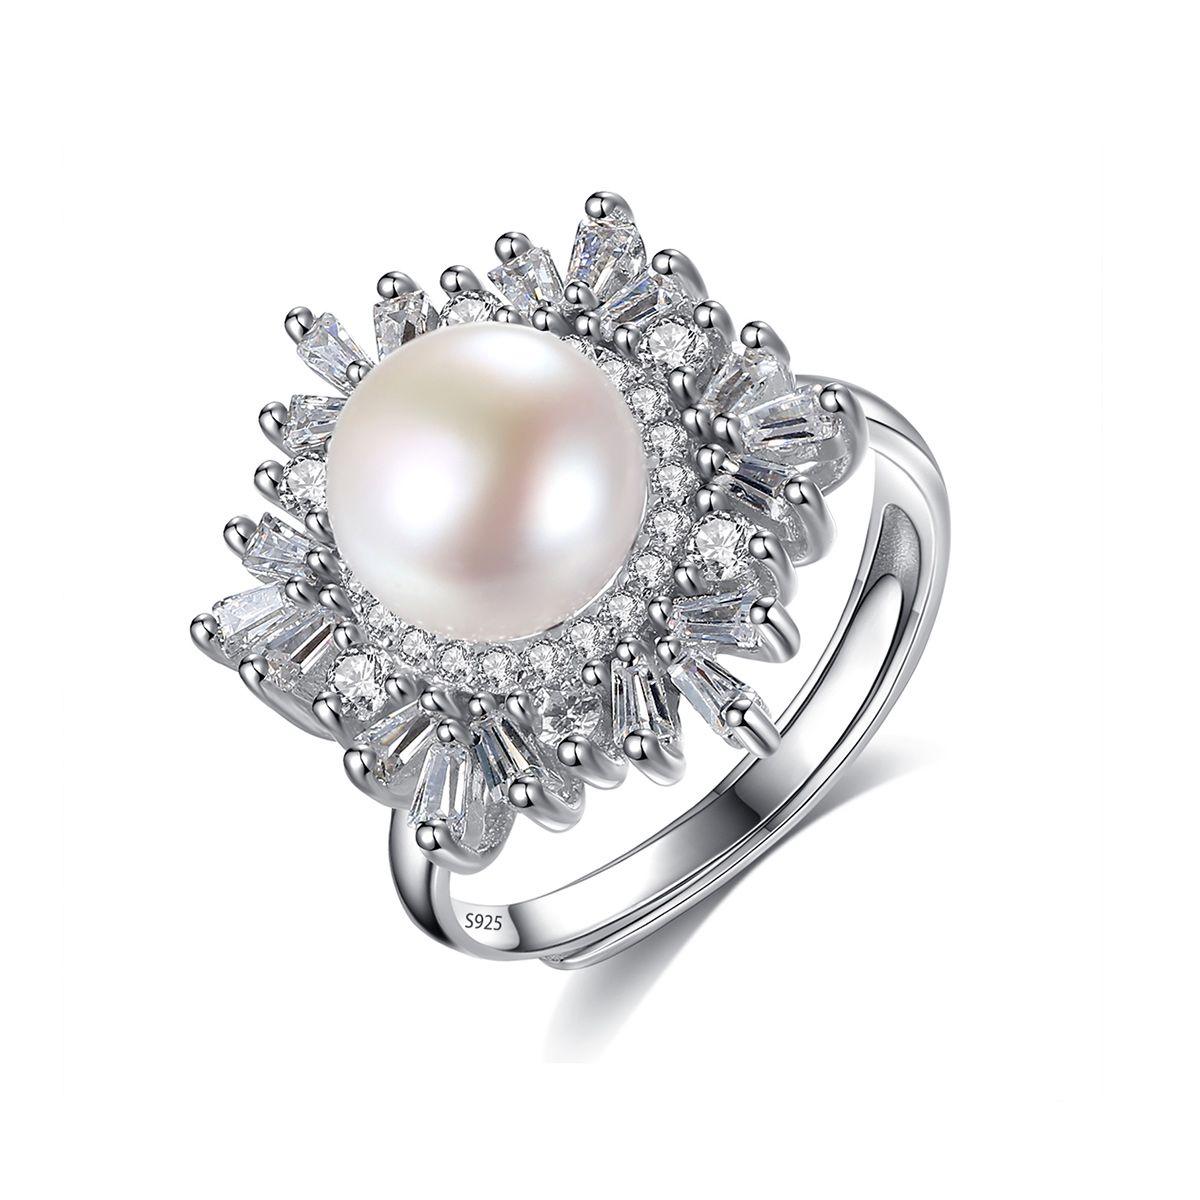 New 925 Sterling Silver Branch And Leaf Ring With  Pearl And Cubic Zirconia